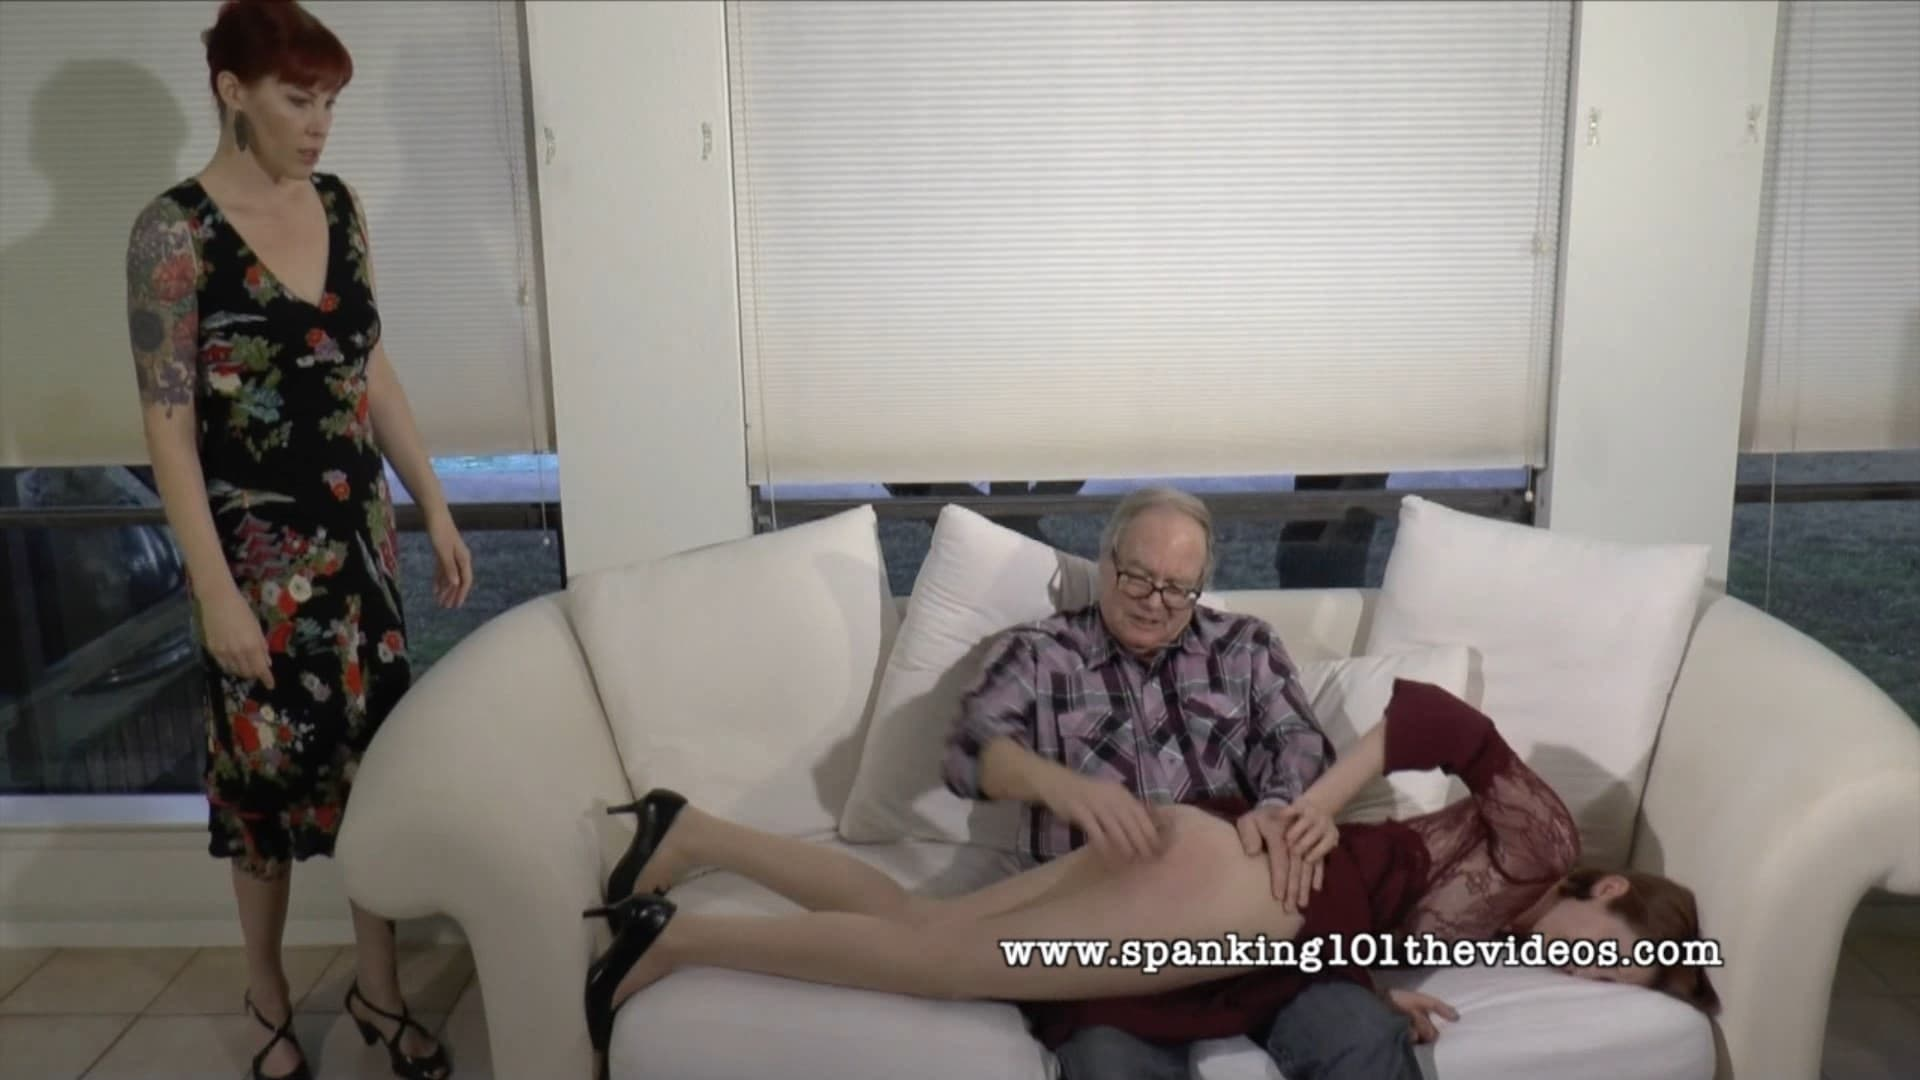 Spanking 101 The Videos – MP4/Full HD – Ava Nyx – Like Mother, Like Daughter